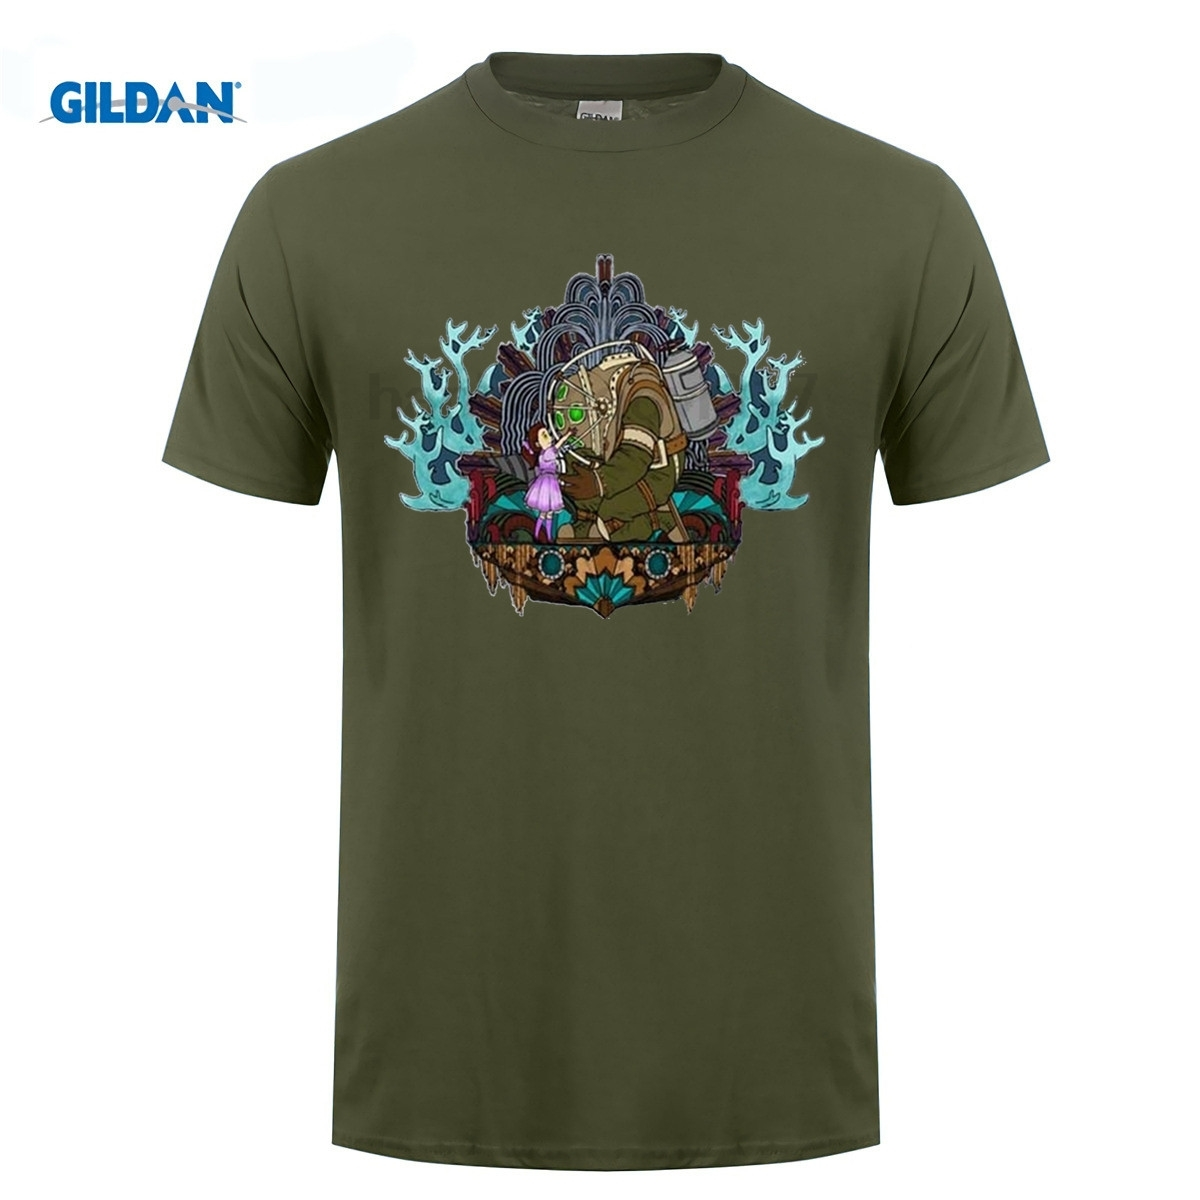 GILDAN men clothes BioShock T-Shirt New Arrival Summer fashion High Quality t shirt casual white print O-Neck top tees